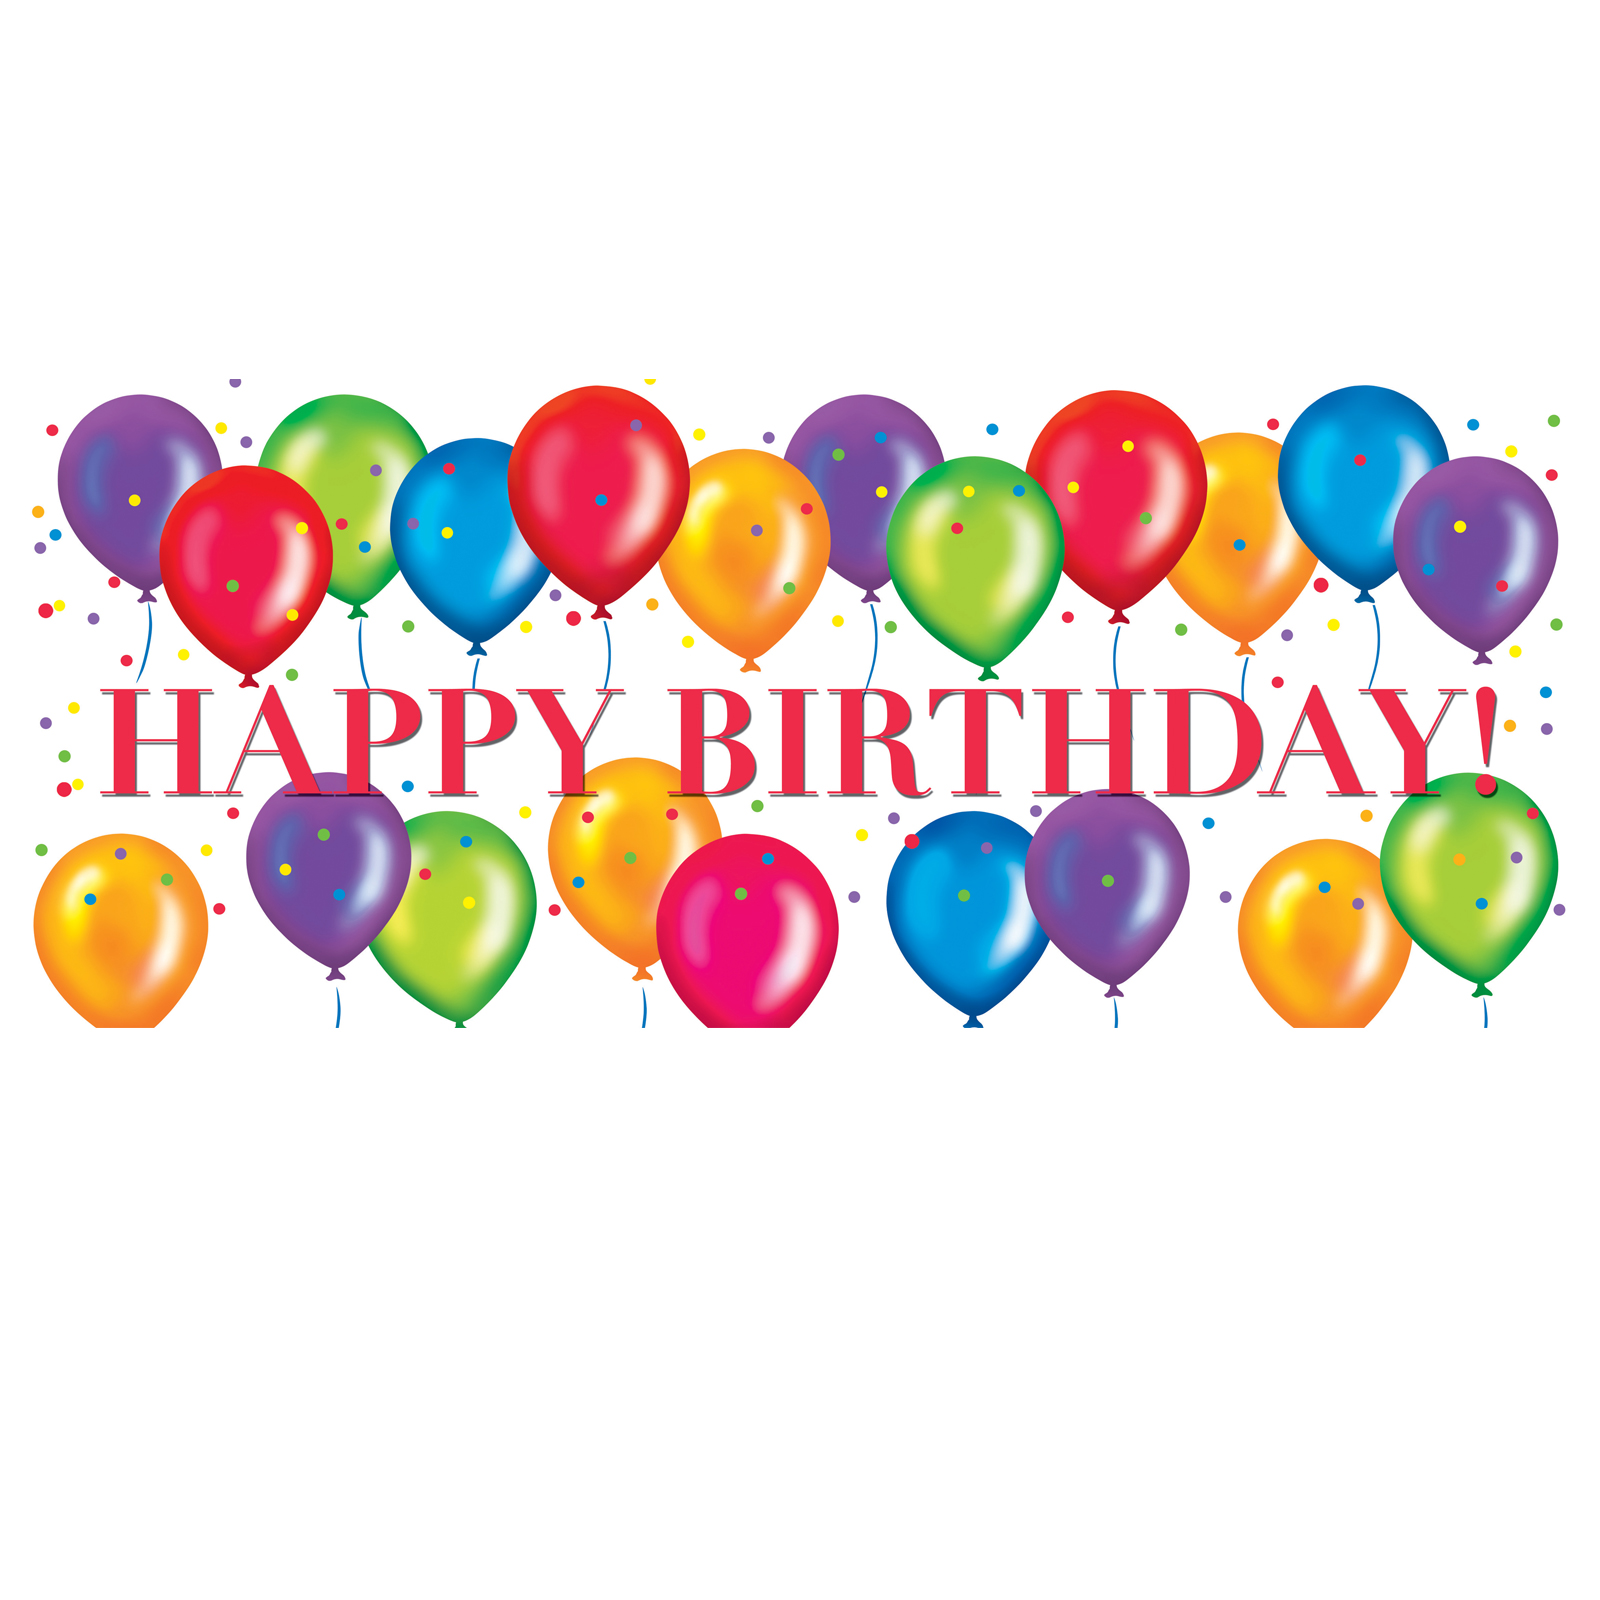 Birthday clipart for facebook svg freeuse Birthday For Facebook Clipart - Clipart Kid svg freeuse